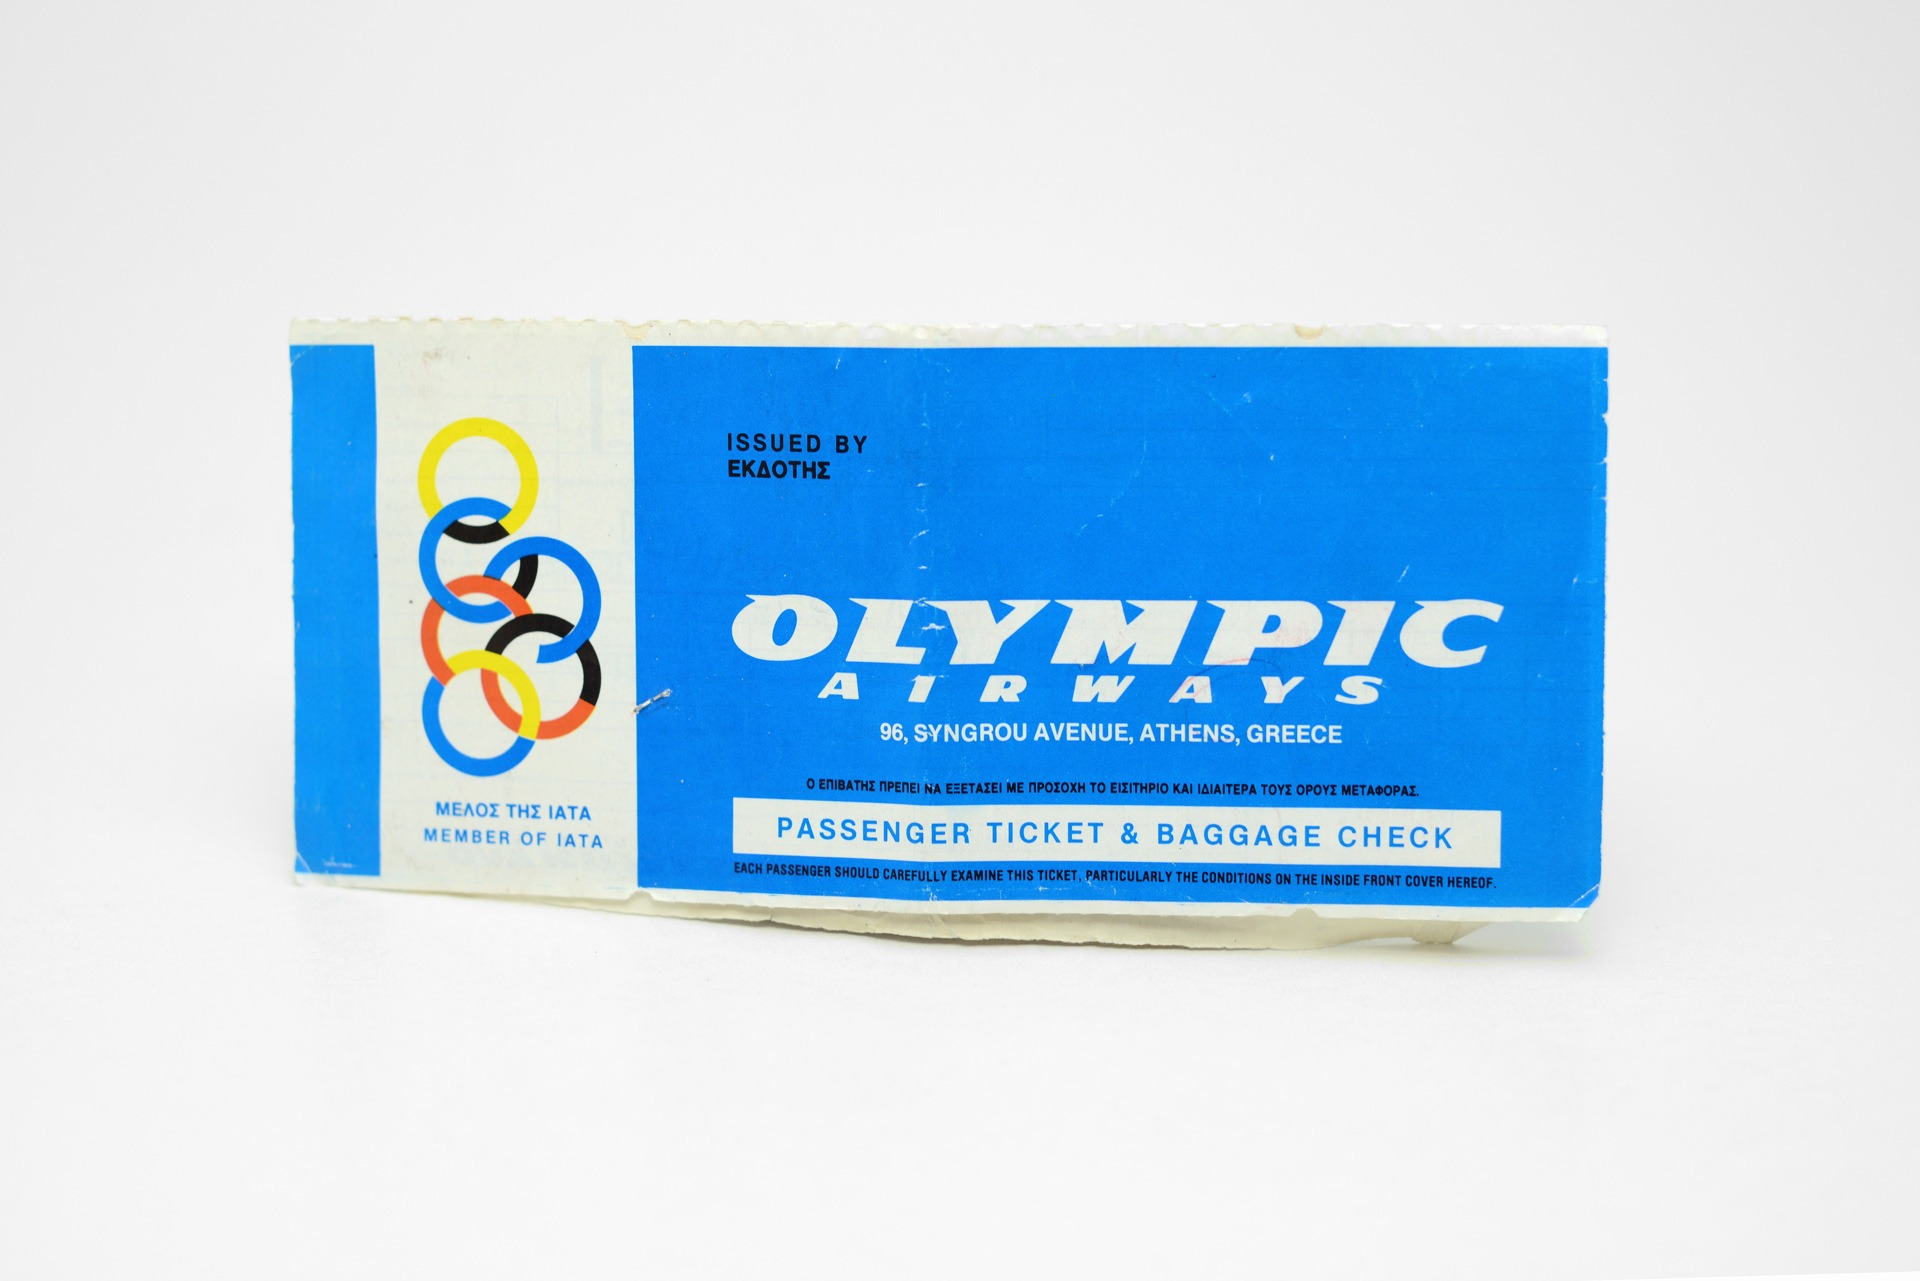 1995 Olympic Airways passenger ticket & baggage check Brussels to Athens